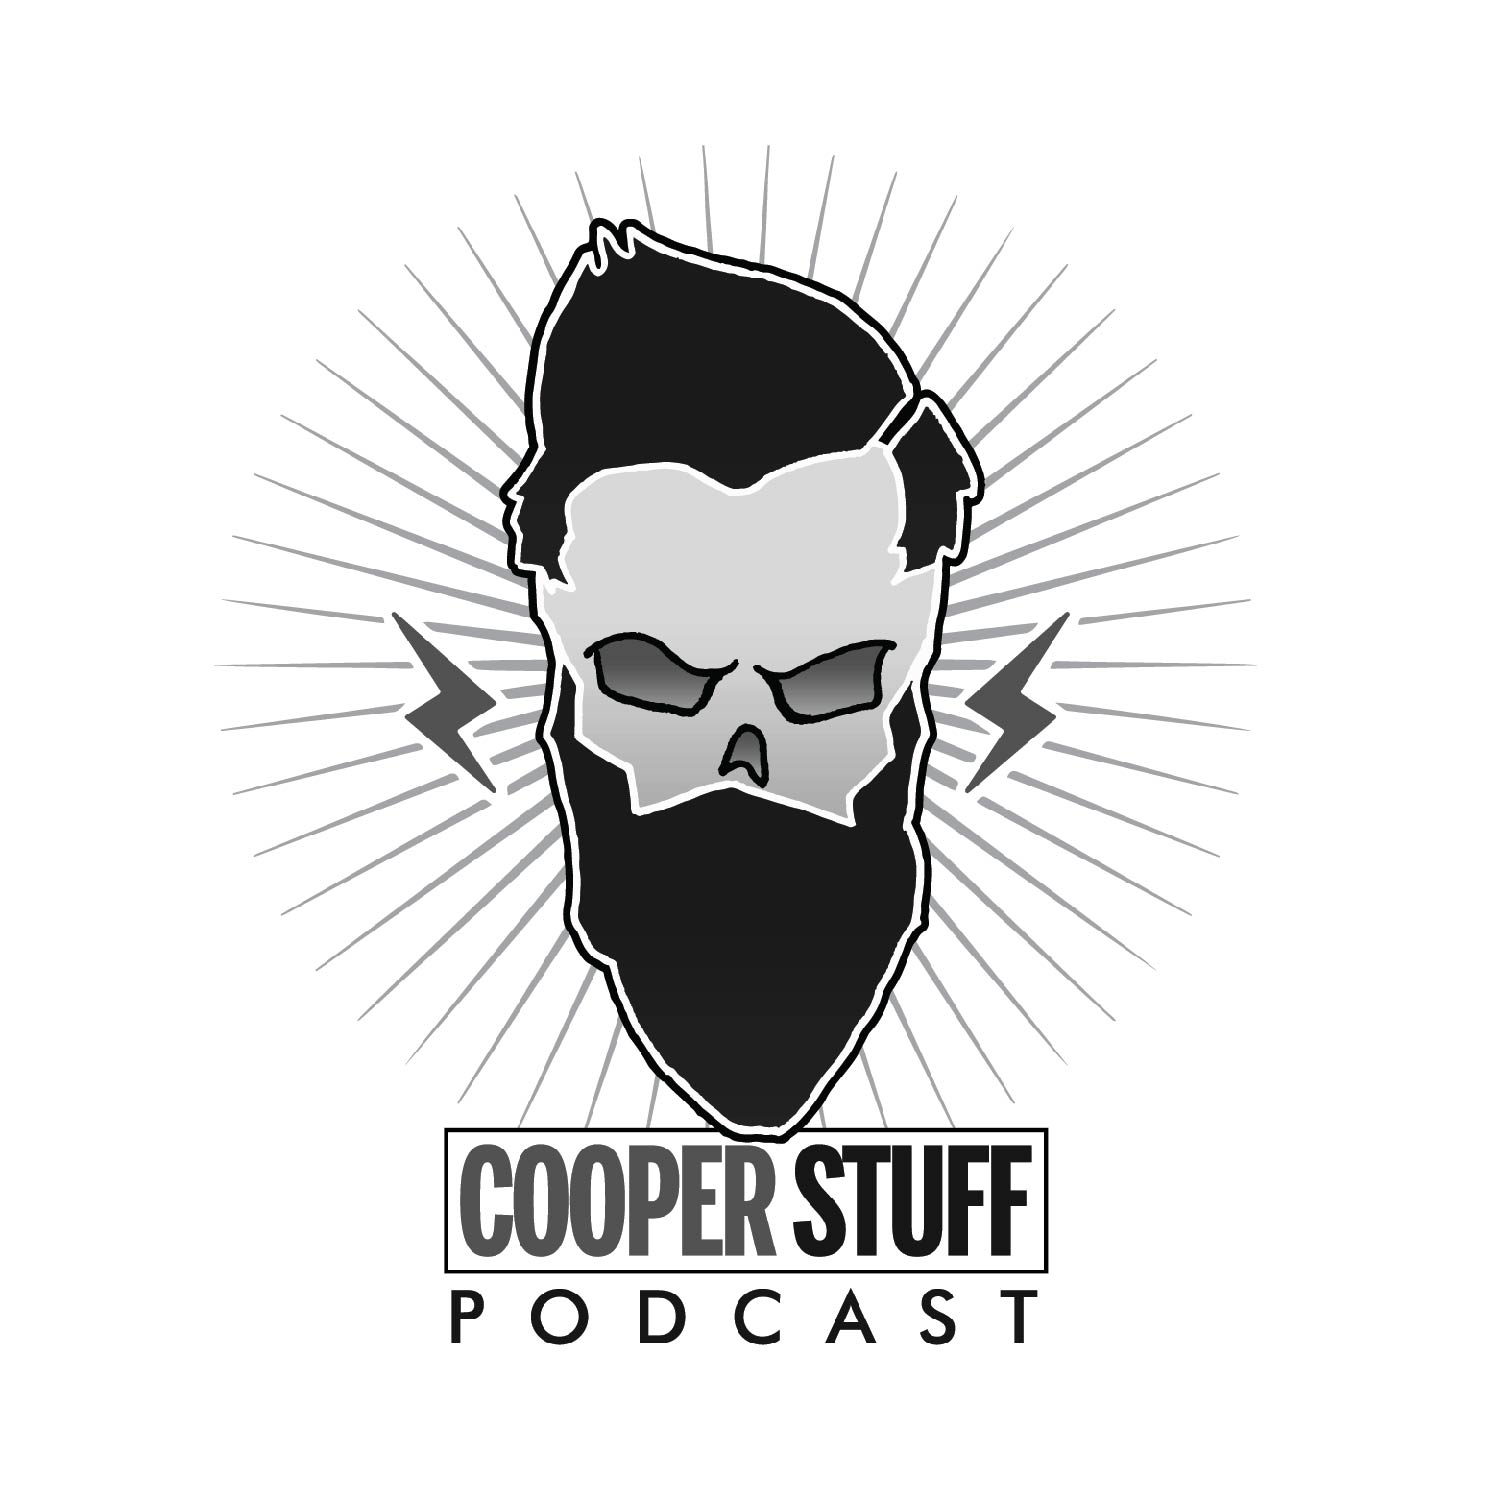 Cooper Stuff Podcast: Victorious with St. Jude.